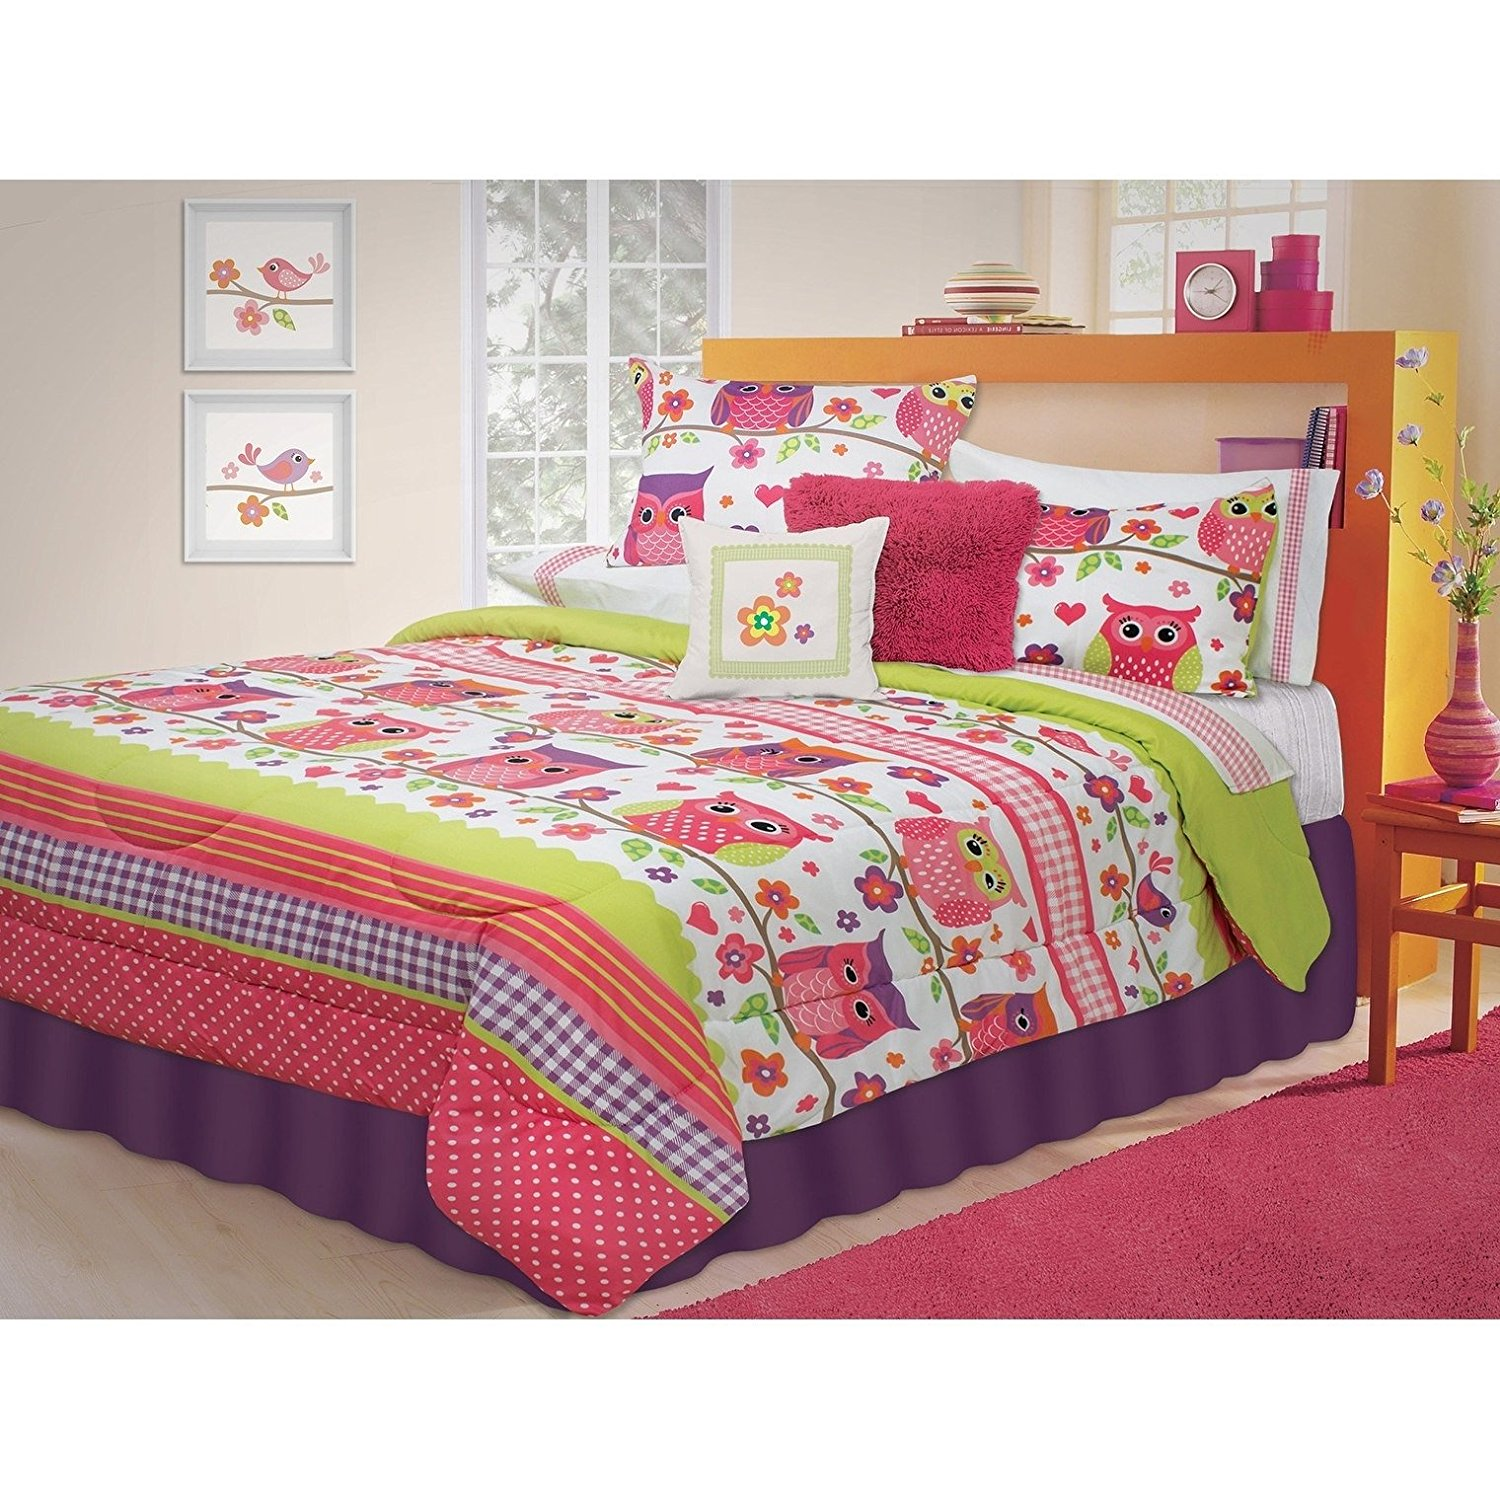 Cheap white flower bedding find white flower bedding deals on line get quotations did 2 piece girls white pink lime green purple owl themed comforter twin set vibrant mightylinksfo